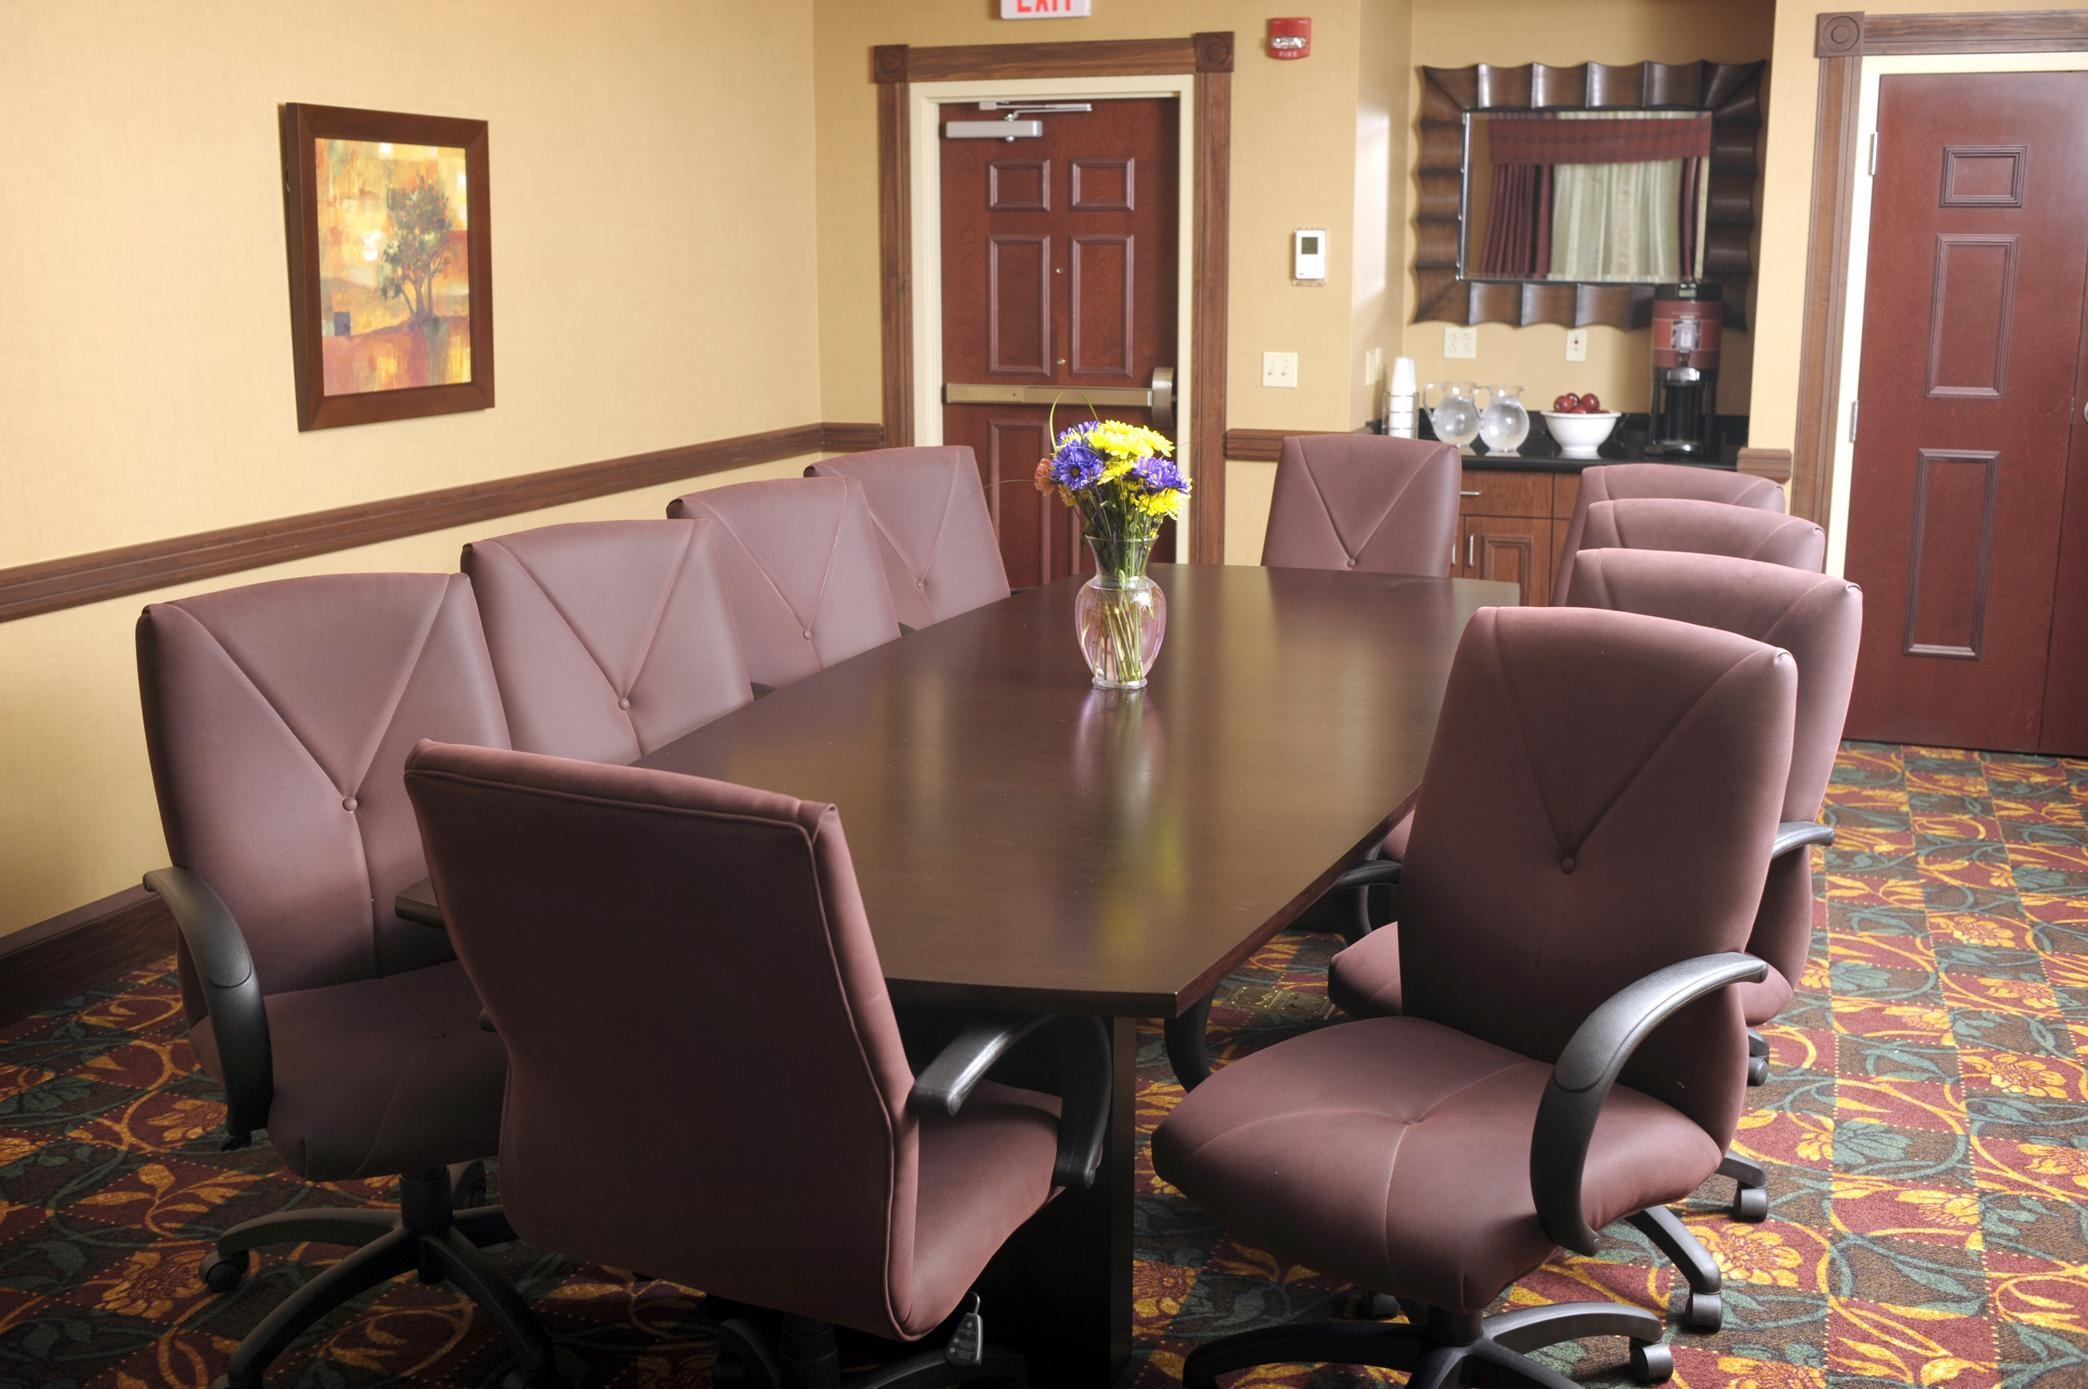 Hampton Inn & Suites Chadds Ford image 45